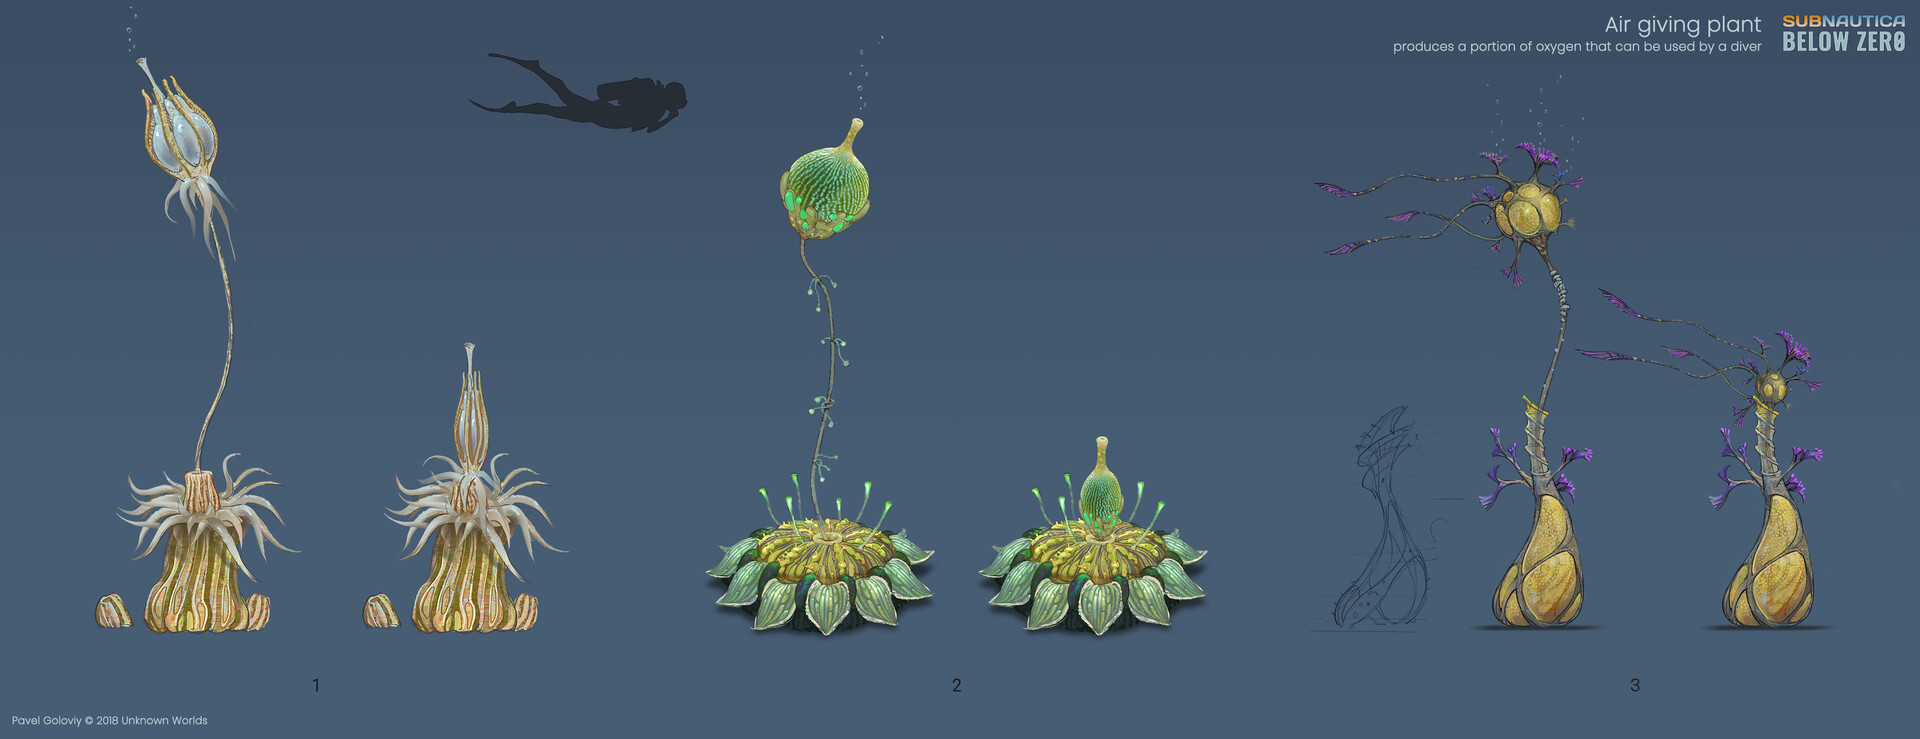 Air giving plant variants